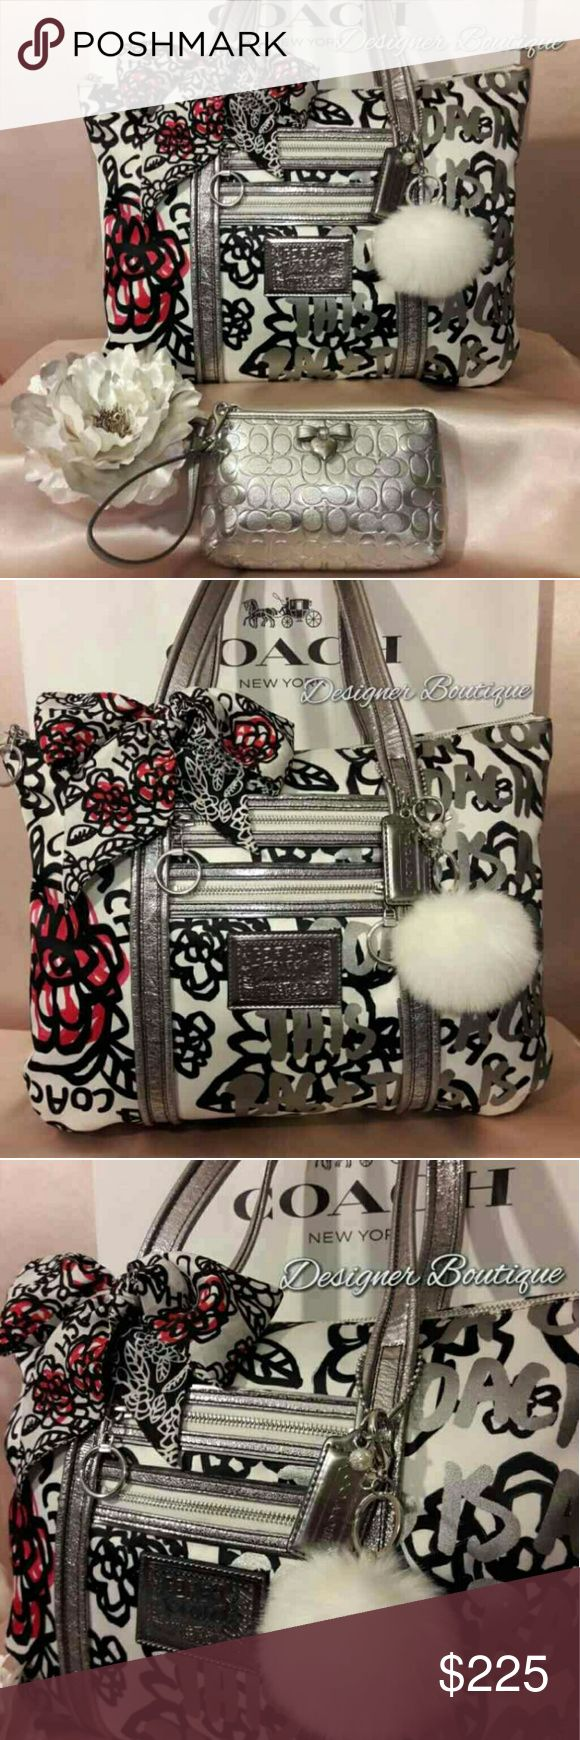 "❤🎉Coach Poppy Bella Glam Tote Set🎉🎉❤ Coach Poppy Floral Graffiti Glam Tote Item: 14741 Color: SV/Black White Multi ☆Floral graffiti fabric with metallic leather trim ☆Inside zip and multifunction pockets ☆Zippered top closure ☆ Soft fabric lining spotless! ☆Outside front zip pockets ☆Double strap Silver Glam handles with 8"" strap drop ☆Approximately: 16"" L x 14"" H x 3"" W ☆In fabulous condition minor wear ☆Matching Wristlet And Scarf Included Coach Bags"